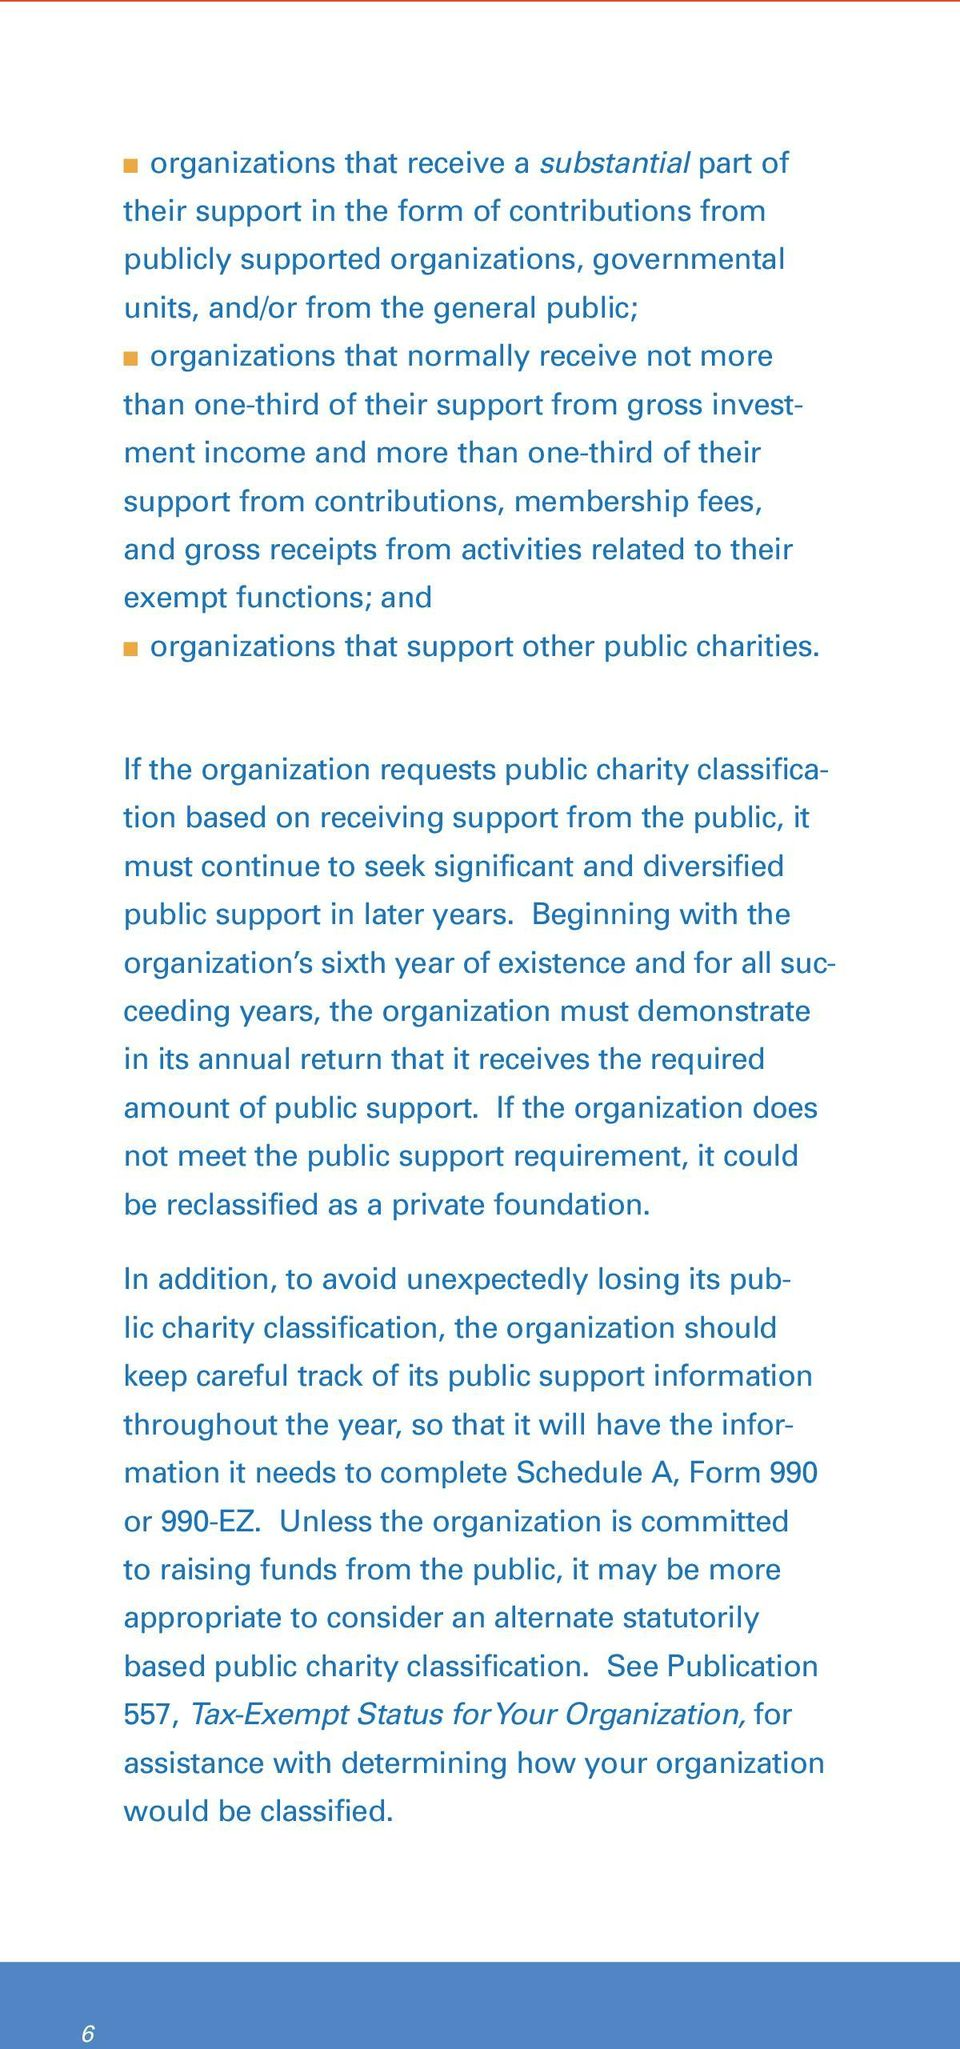 receipts from activities related to their exempt functions; and n organizations that support other public charities.